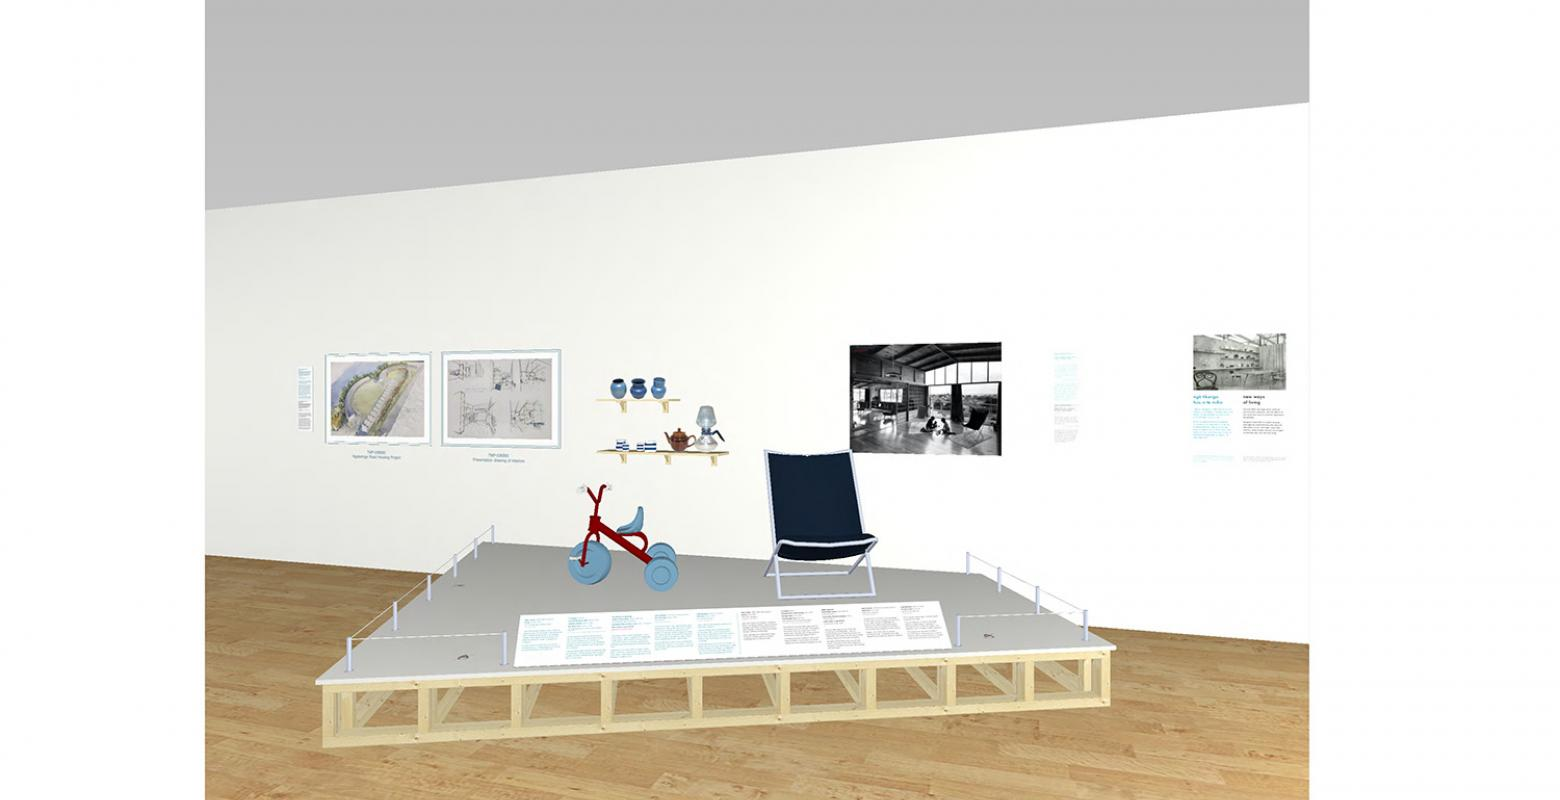 A computer drawing of an exhibition space